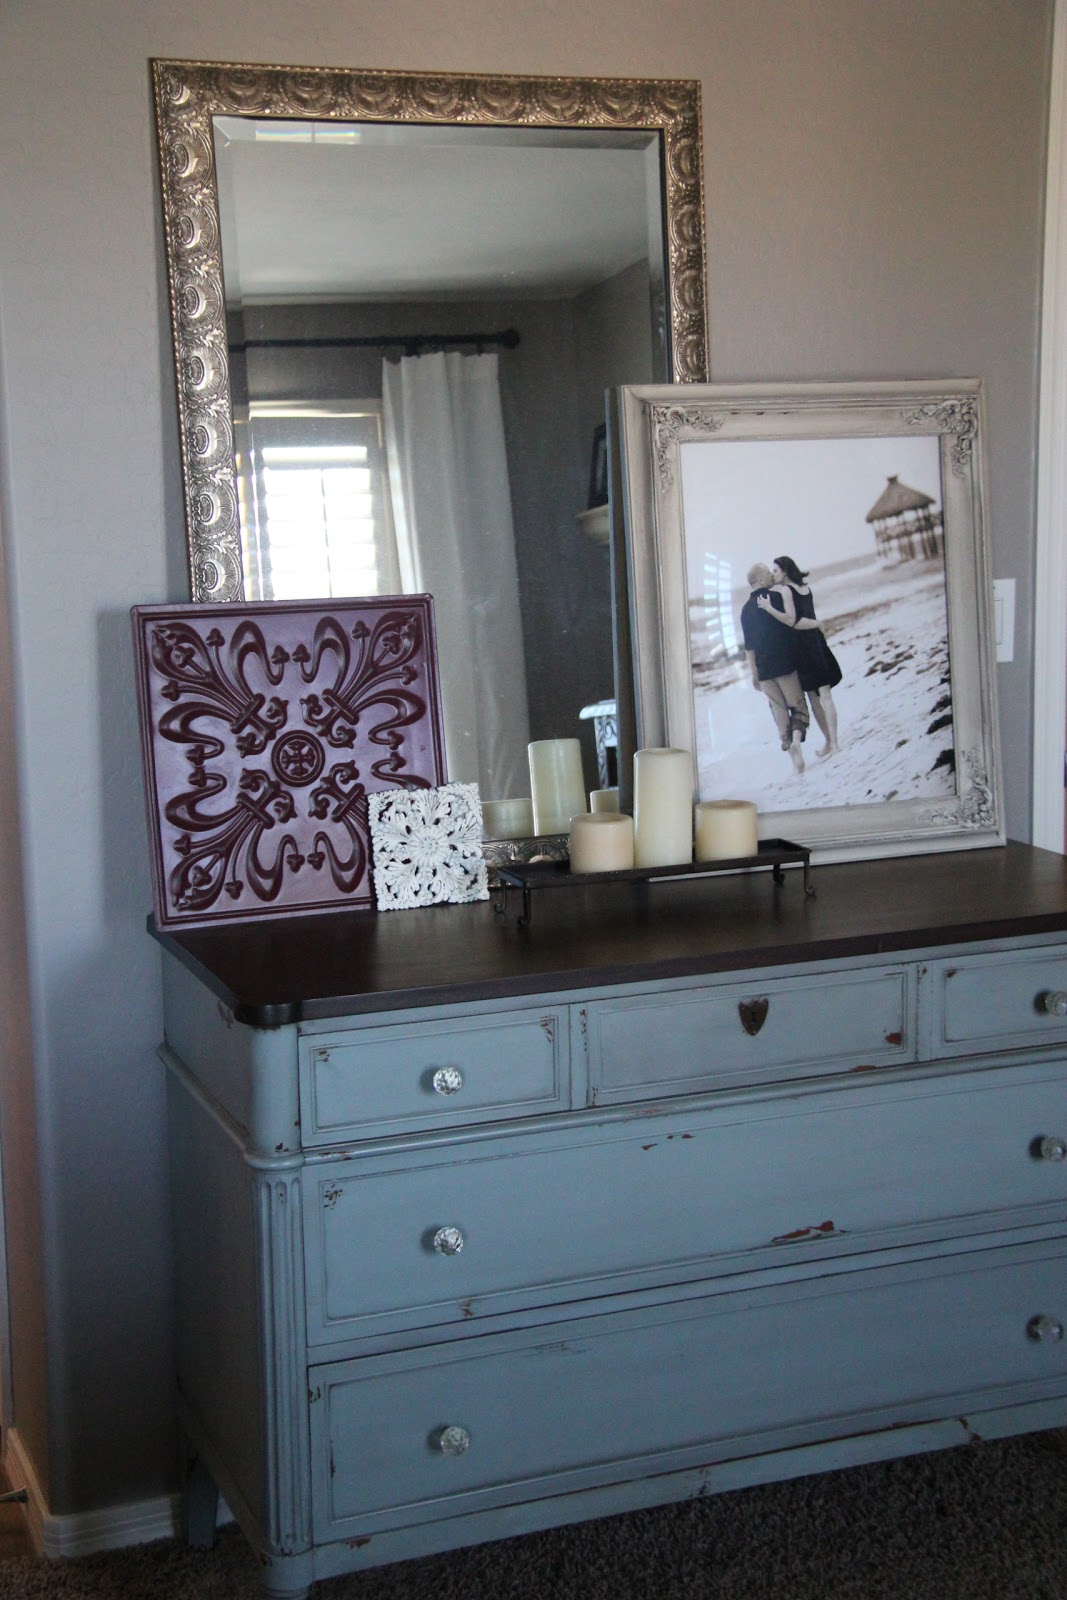 New to You: Cute Dresser for our Master Bedroom